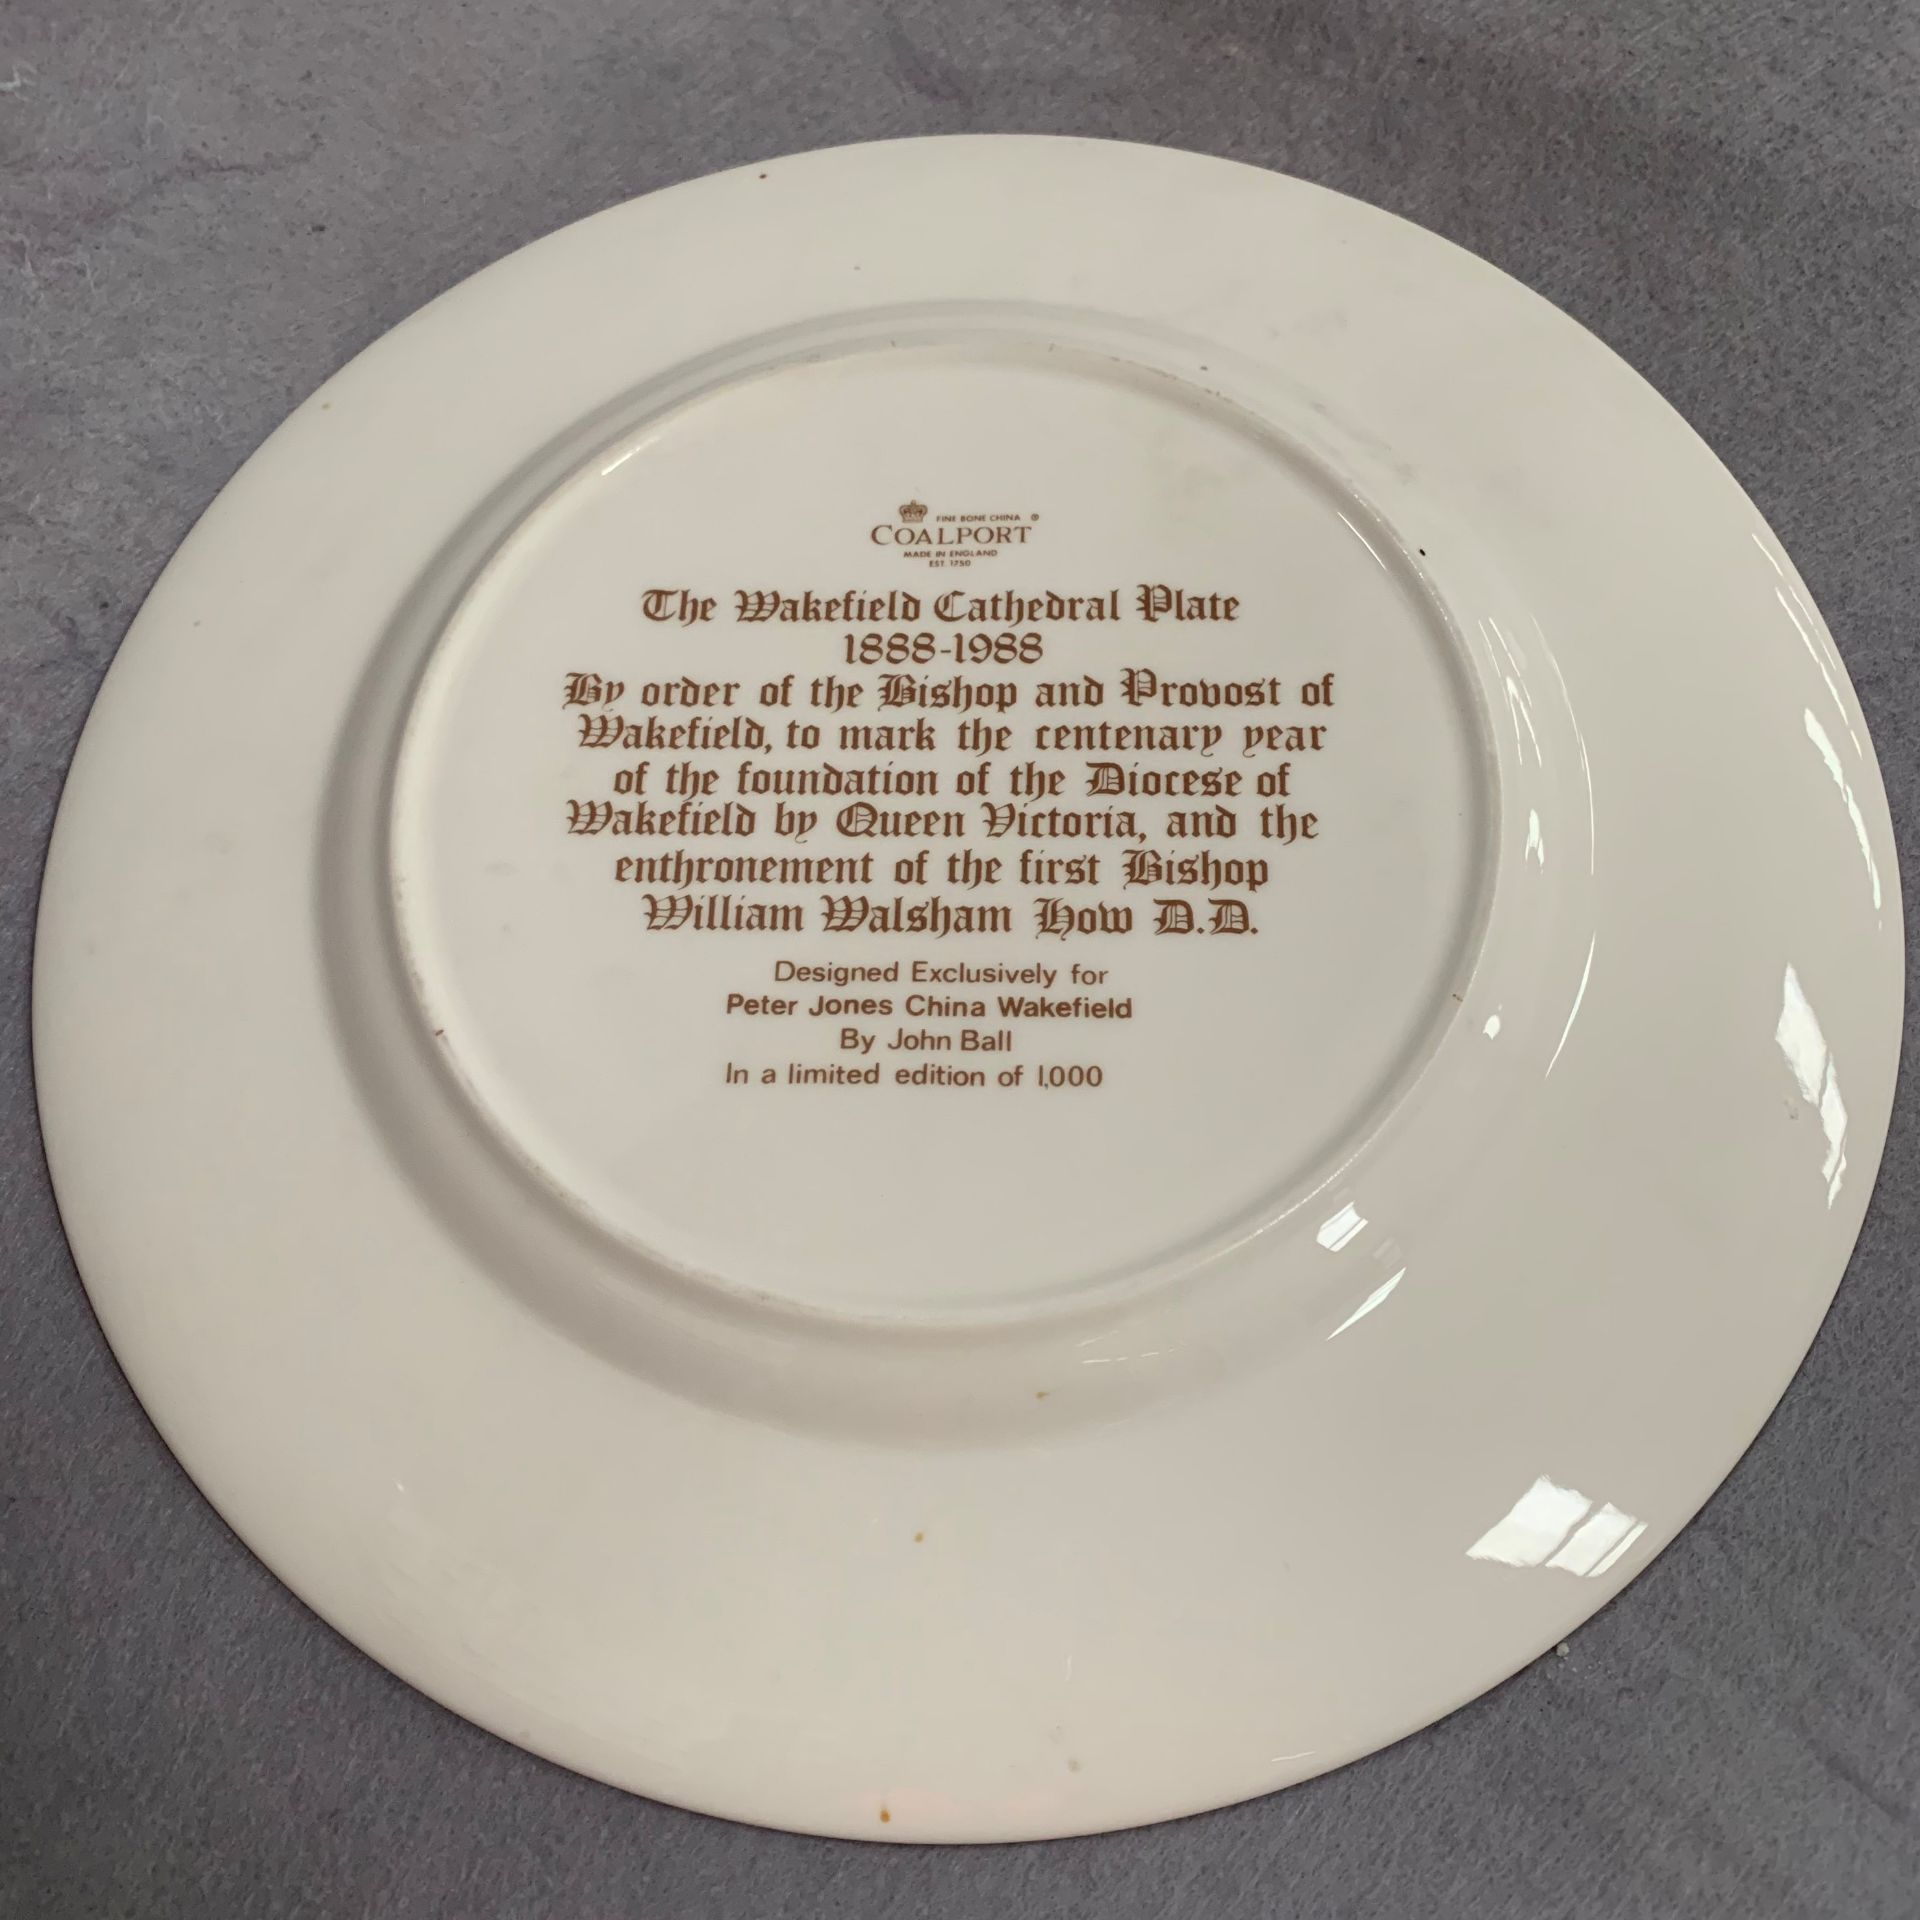 Lot 32 - Coalport 'The Wakefield Cathedral Plate' 1888 to 1988 - limited edition of 1,